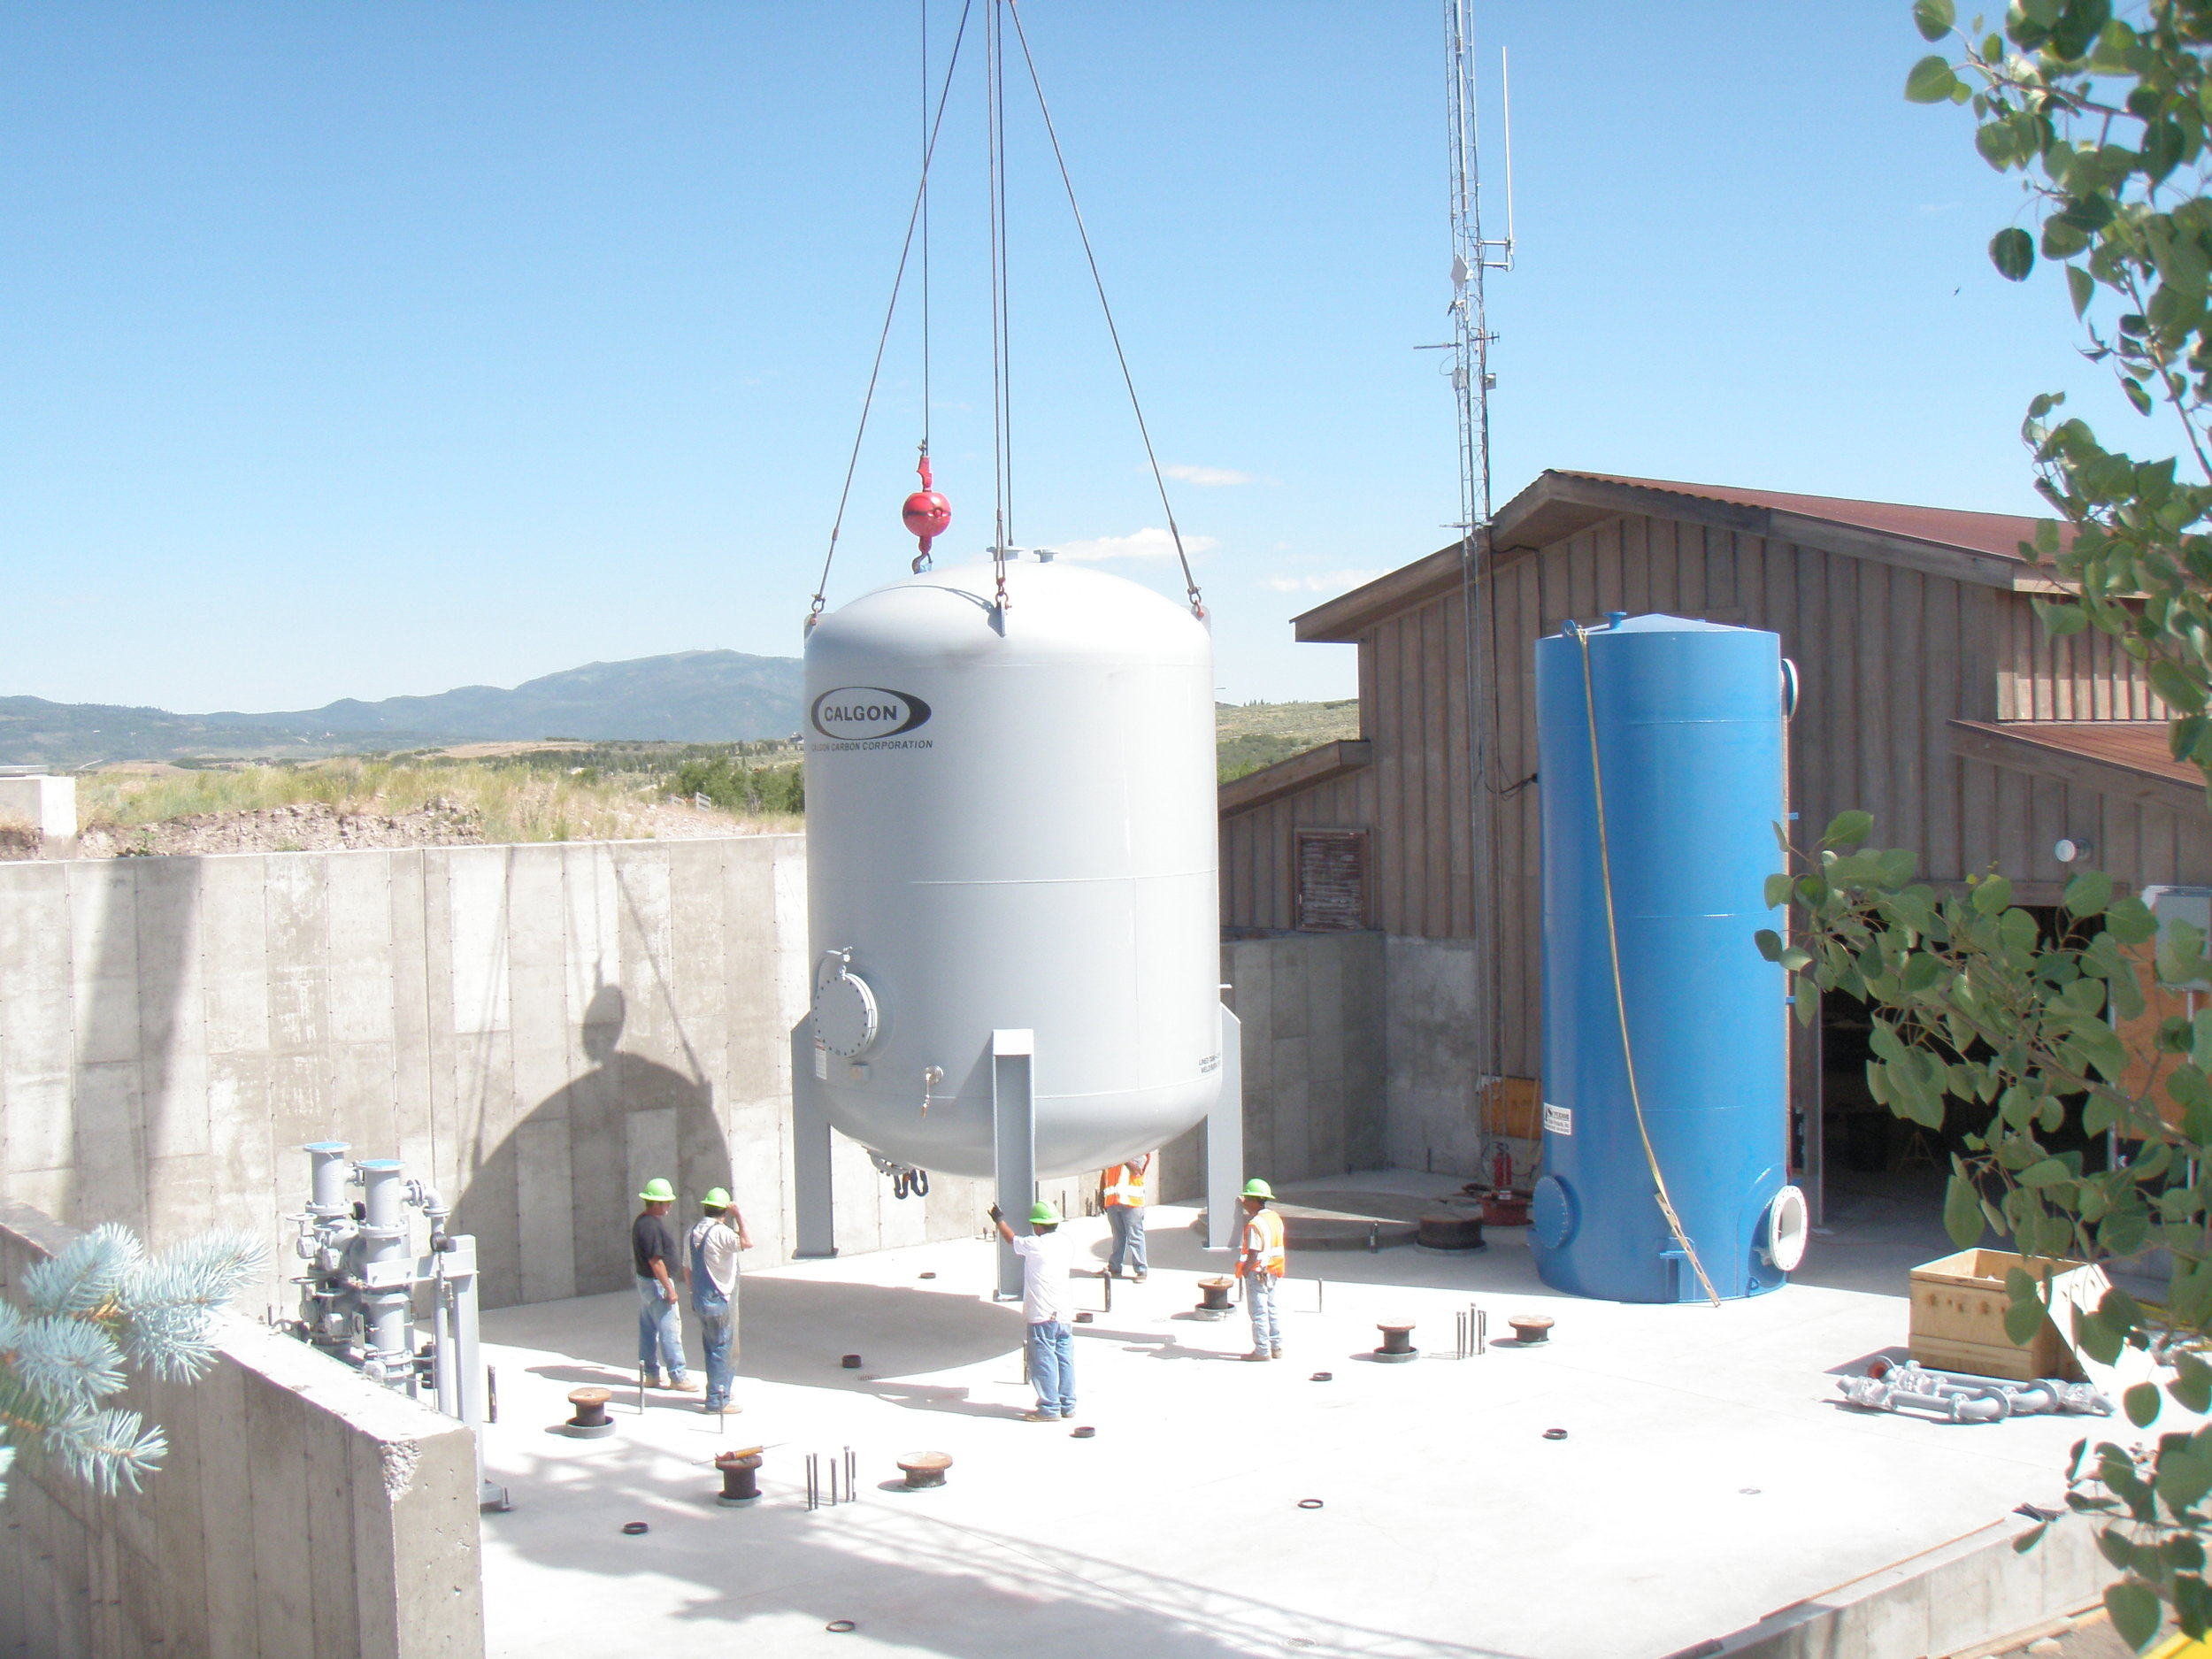 Installing post-treatment GAC absorbers to improve water quality at the treatment plant expansion of 2009.